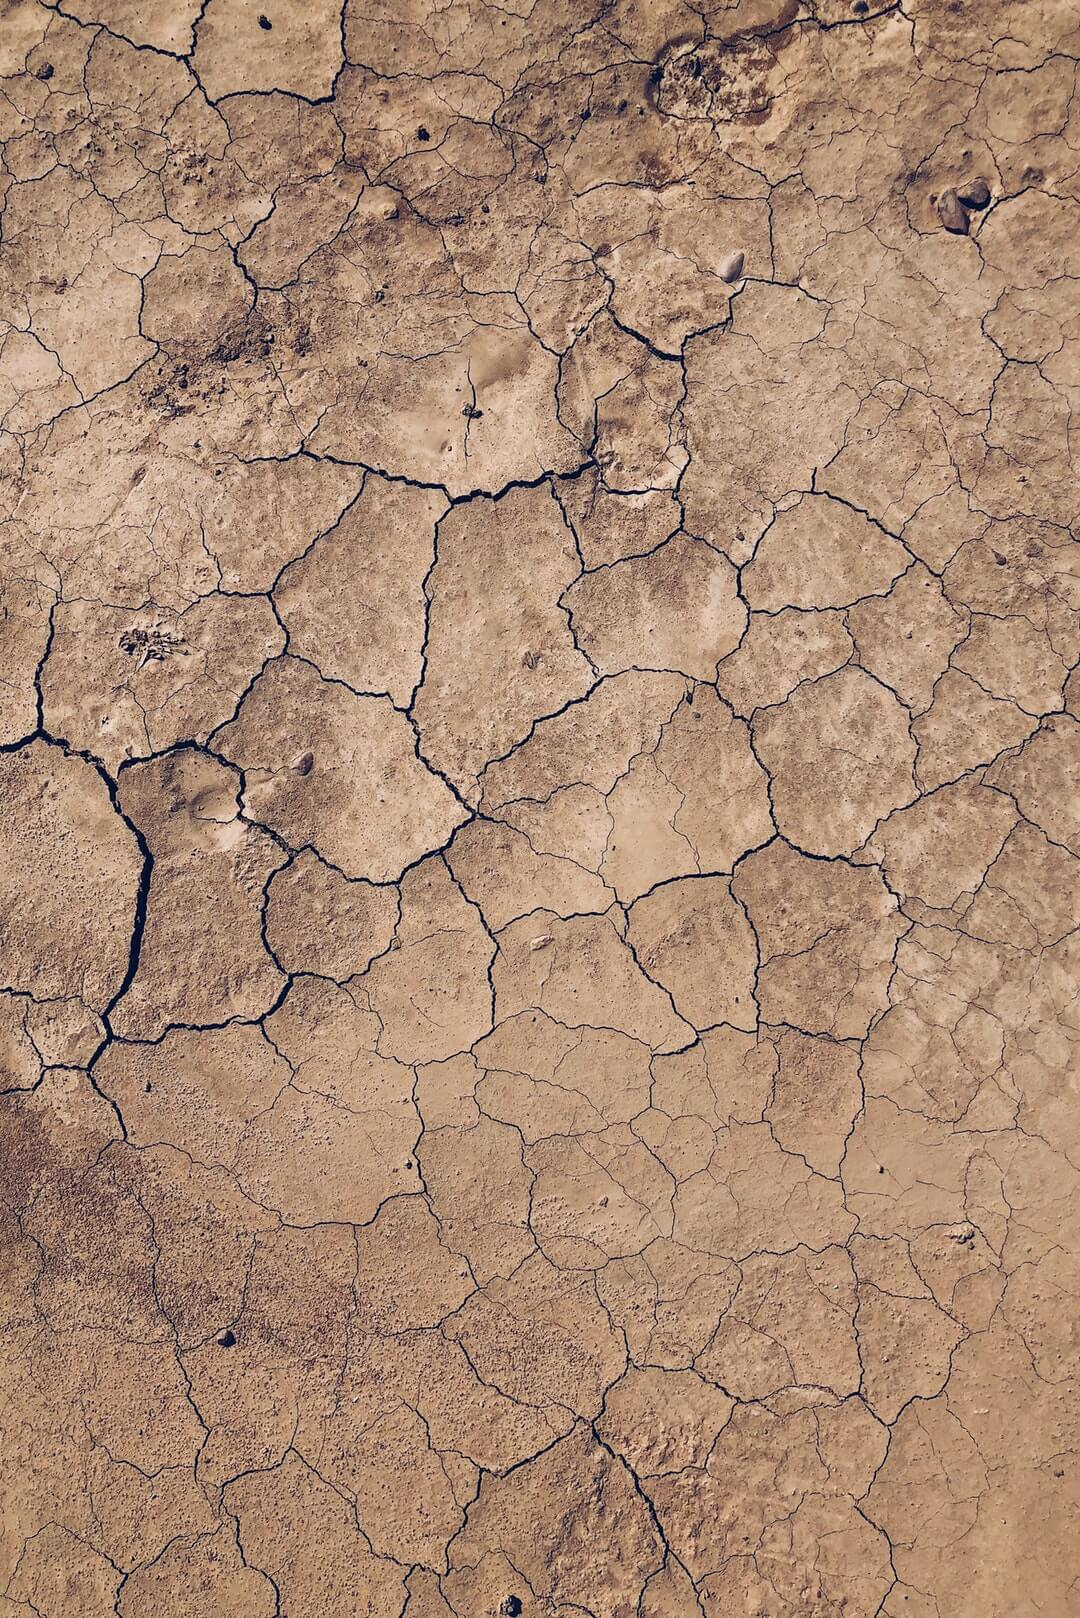 dry ground drought climate change